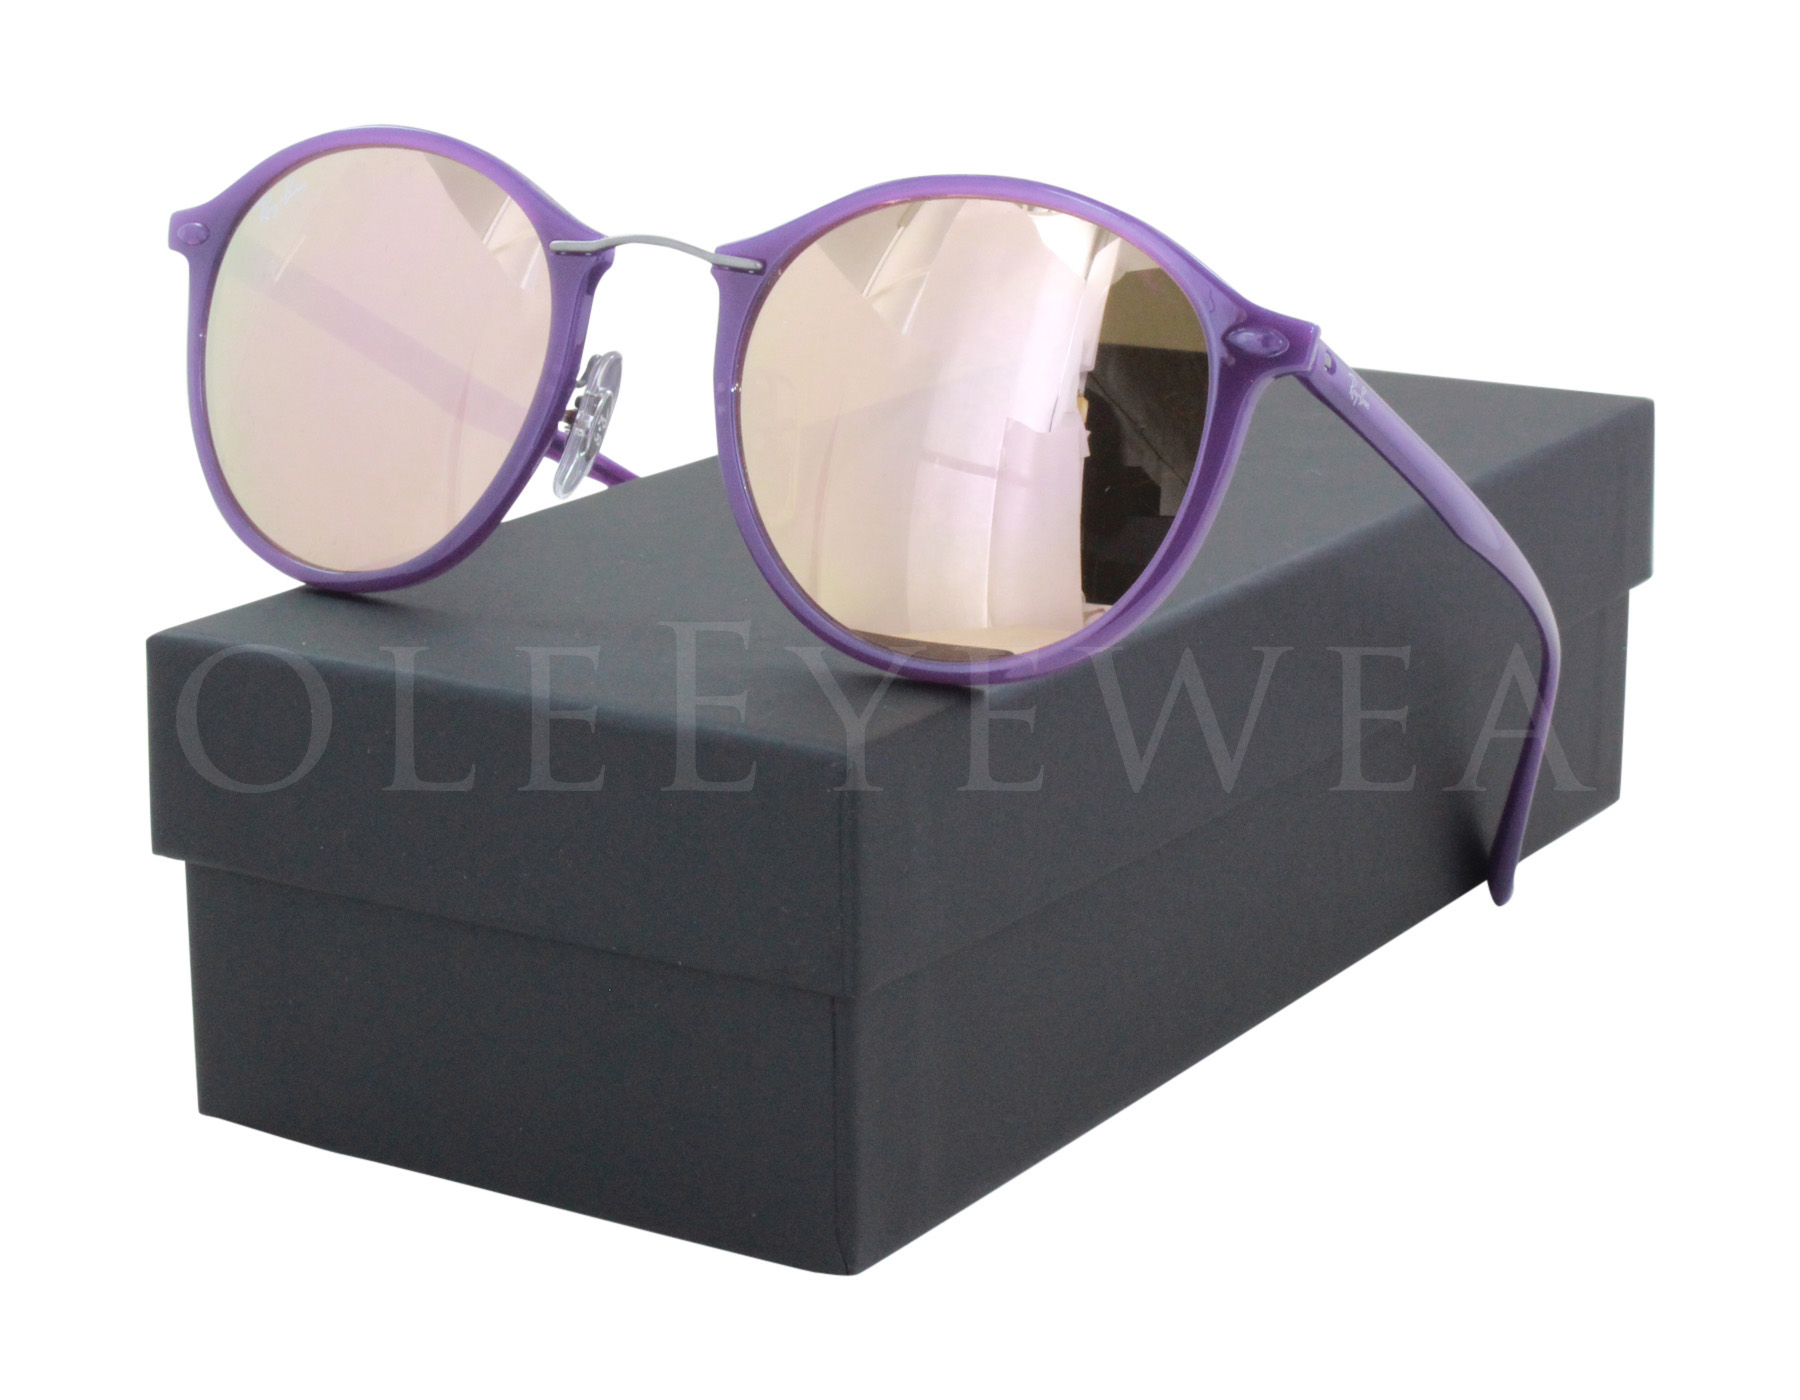 8ddf2146b4e6f Details about NEW Ray Ban RB 4242 6034 2Y 49mm Violet   Copper Mirror  Sunglasses